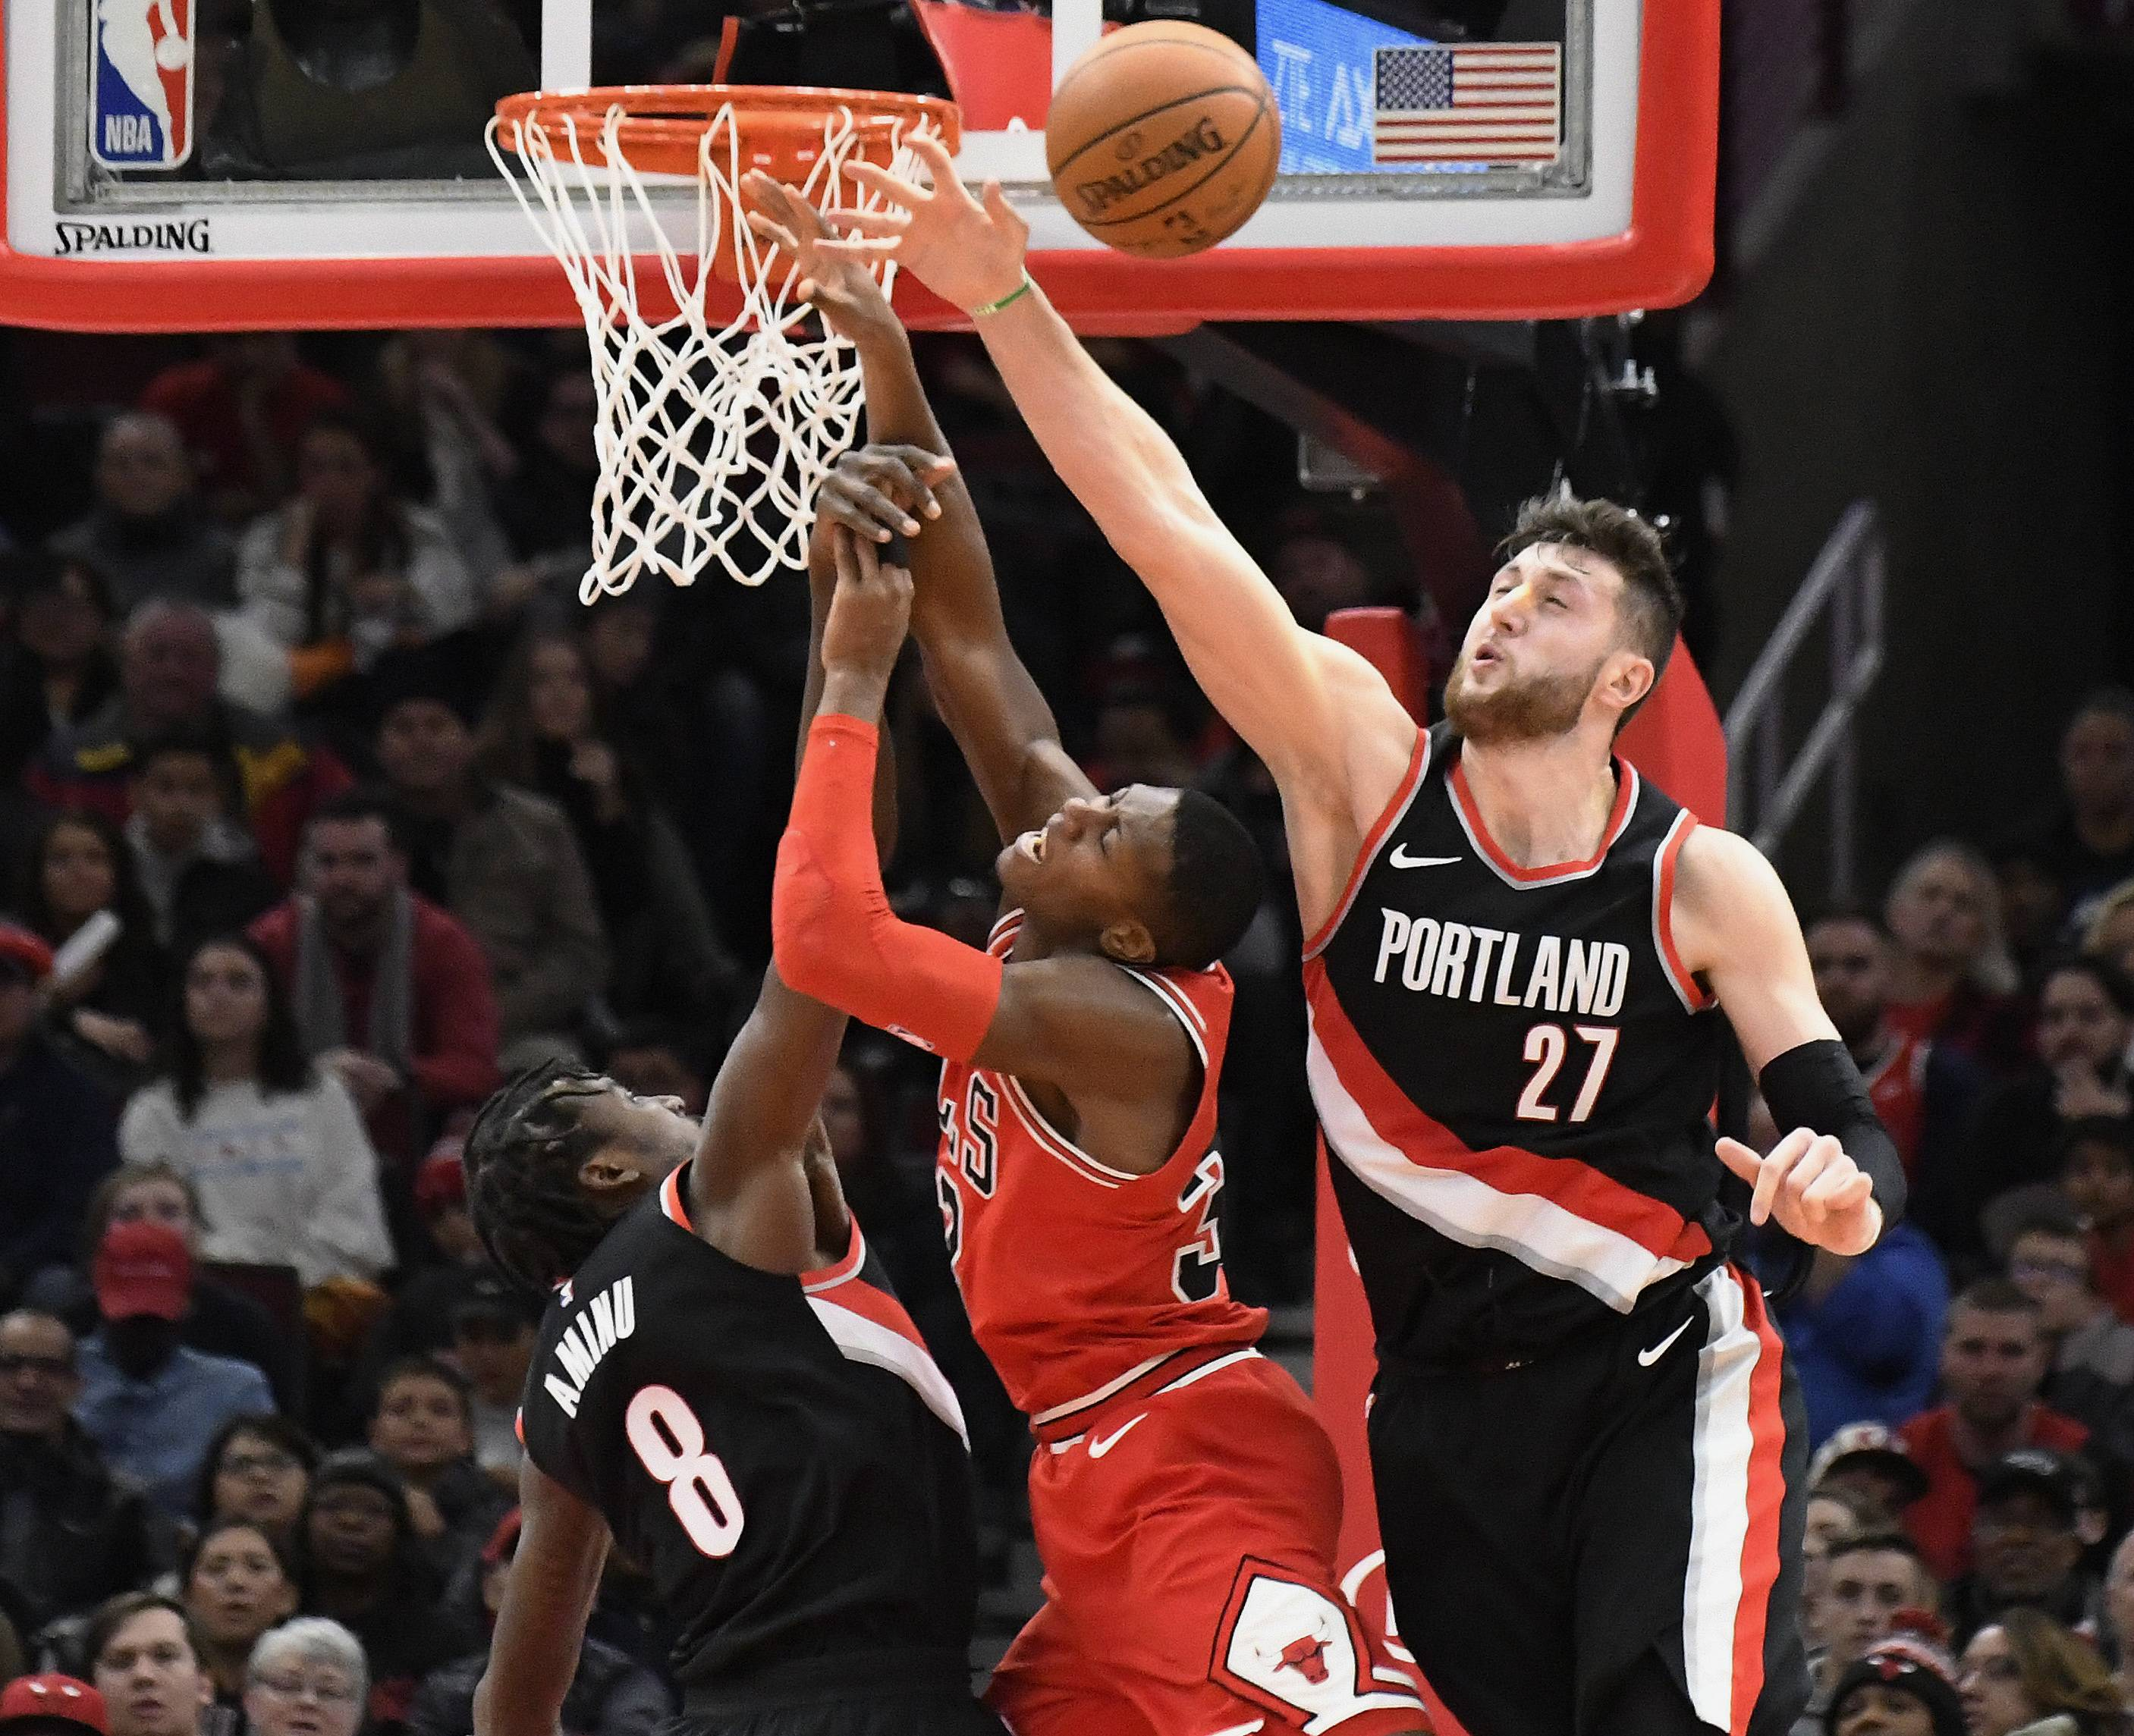 Chicago Bulls lose to Blazers in OT, snap seven-game home win streak